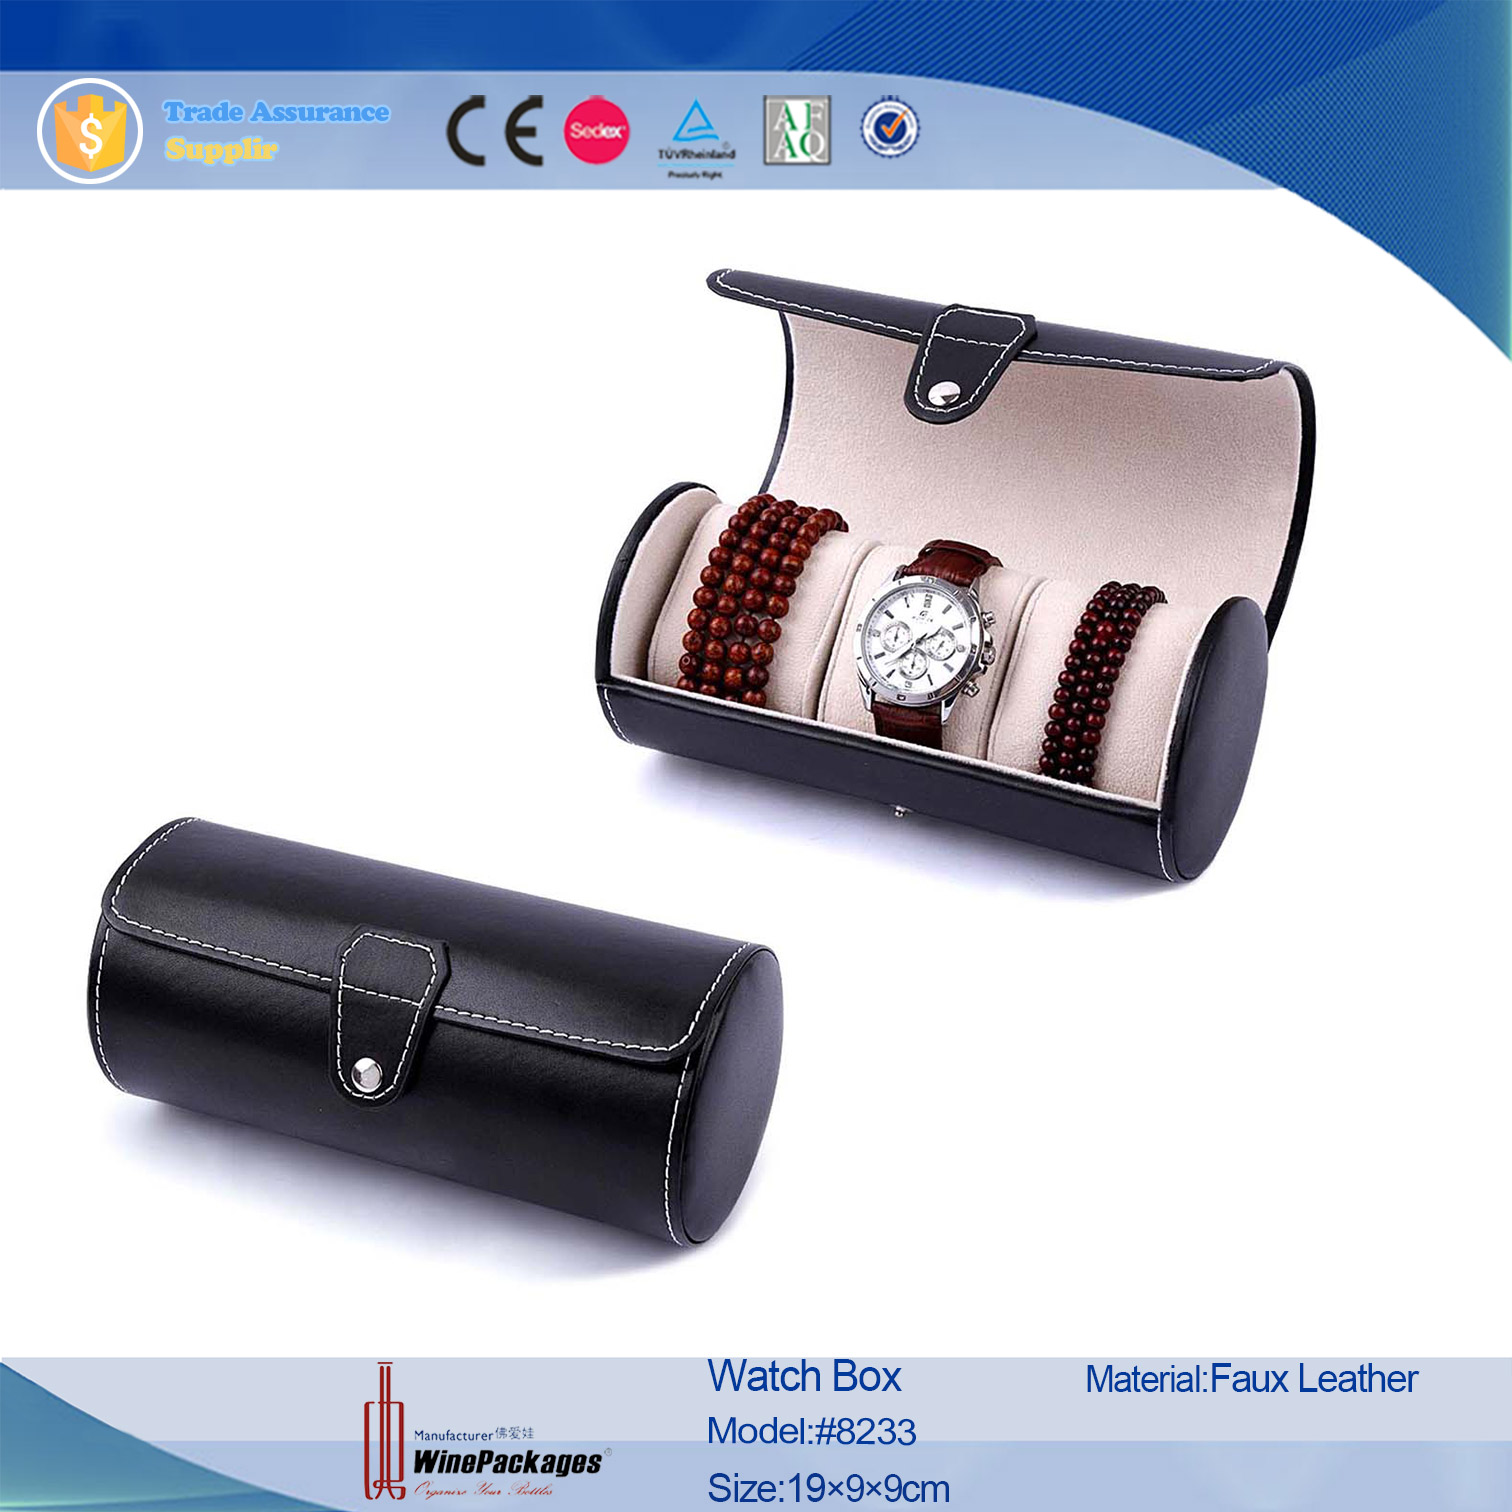 Upadte Faux Leather Watch Packing Box